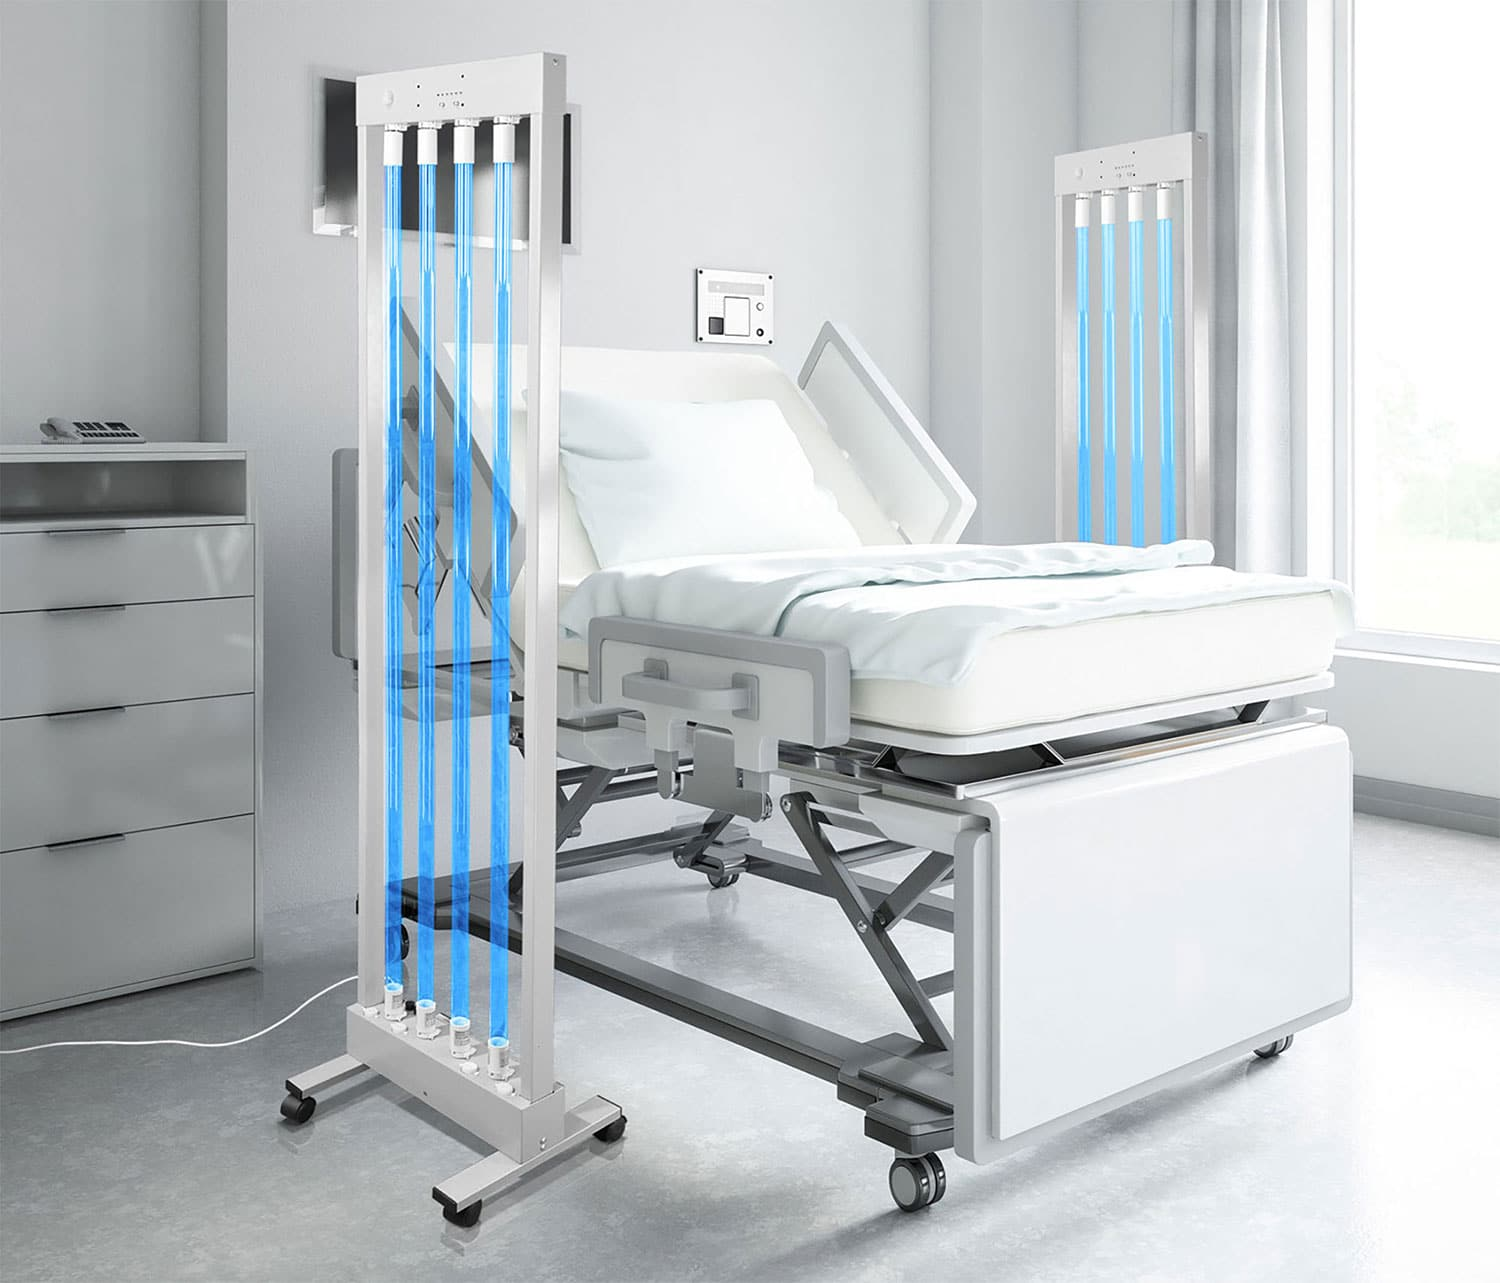 MUVI uv disinfection in patient room healthcare facility at hospital